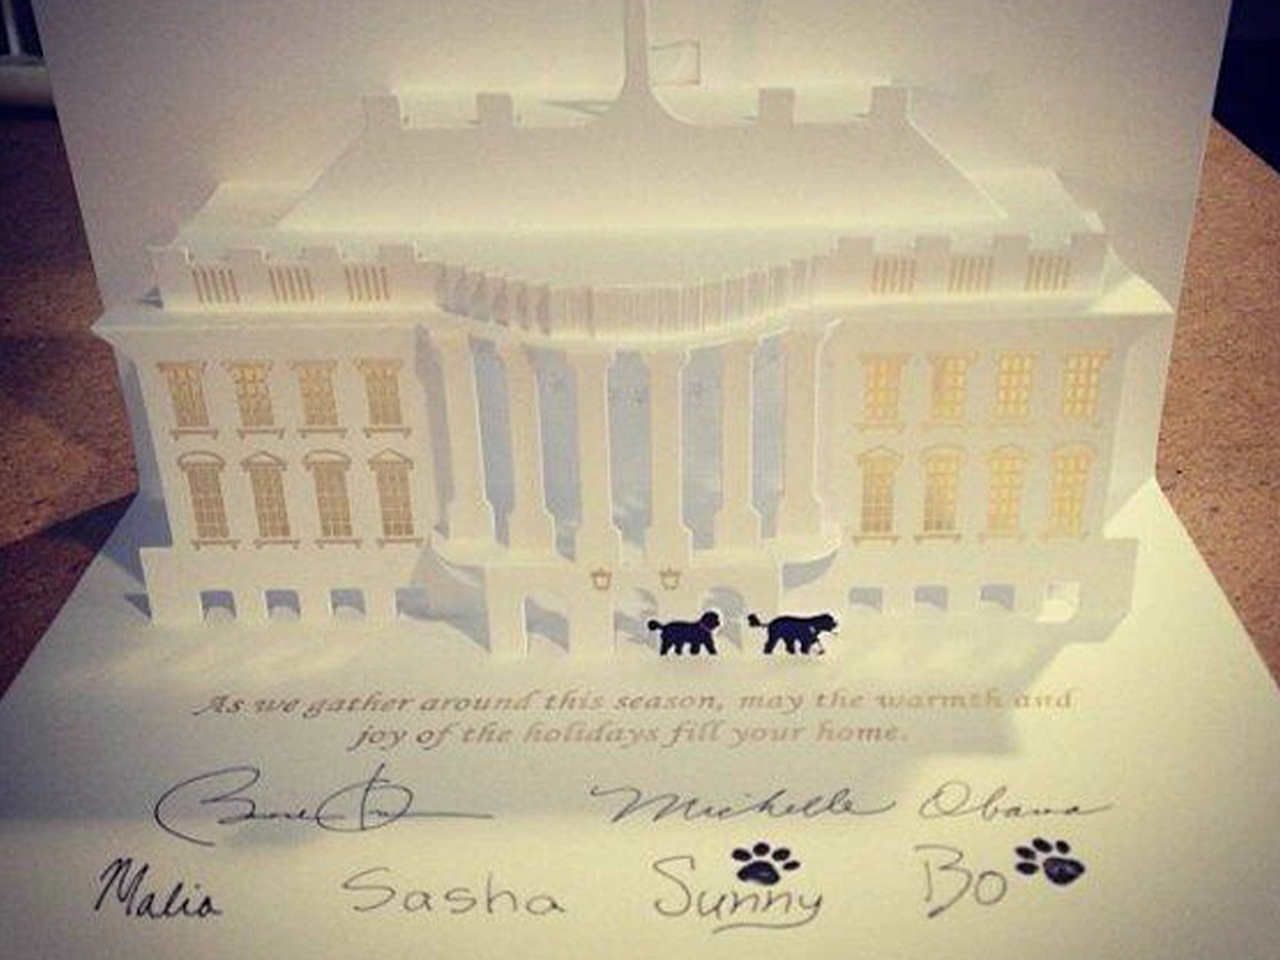 White House Christmas card stars dogs Bo and Sunny - TODAY.com